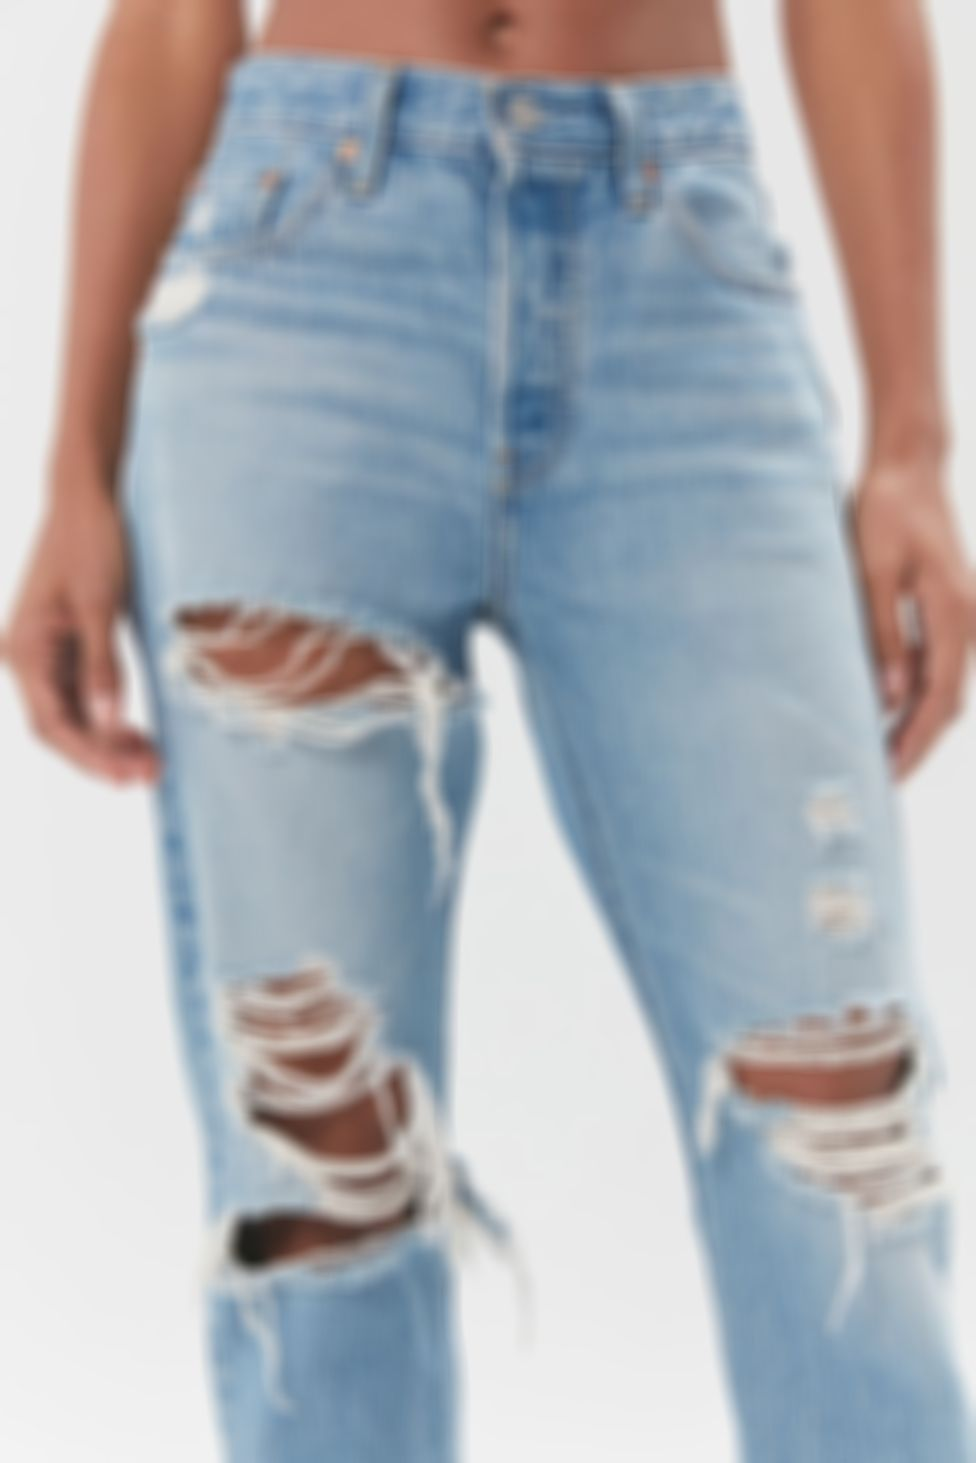 Jeans For Women Paper Bag Pants Womens Workout Clothes Clearance Cheap Coats Rust Trousers